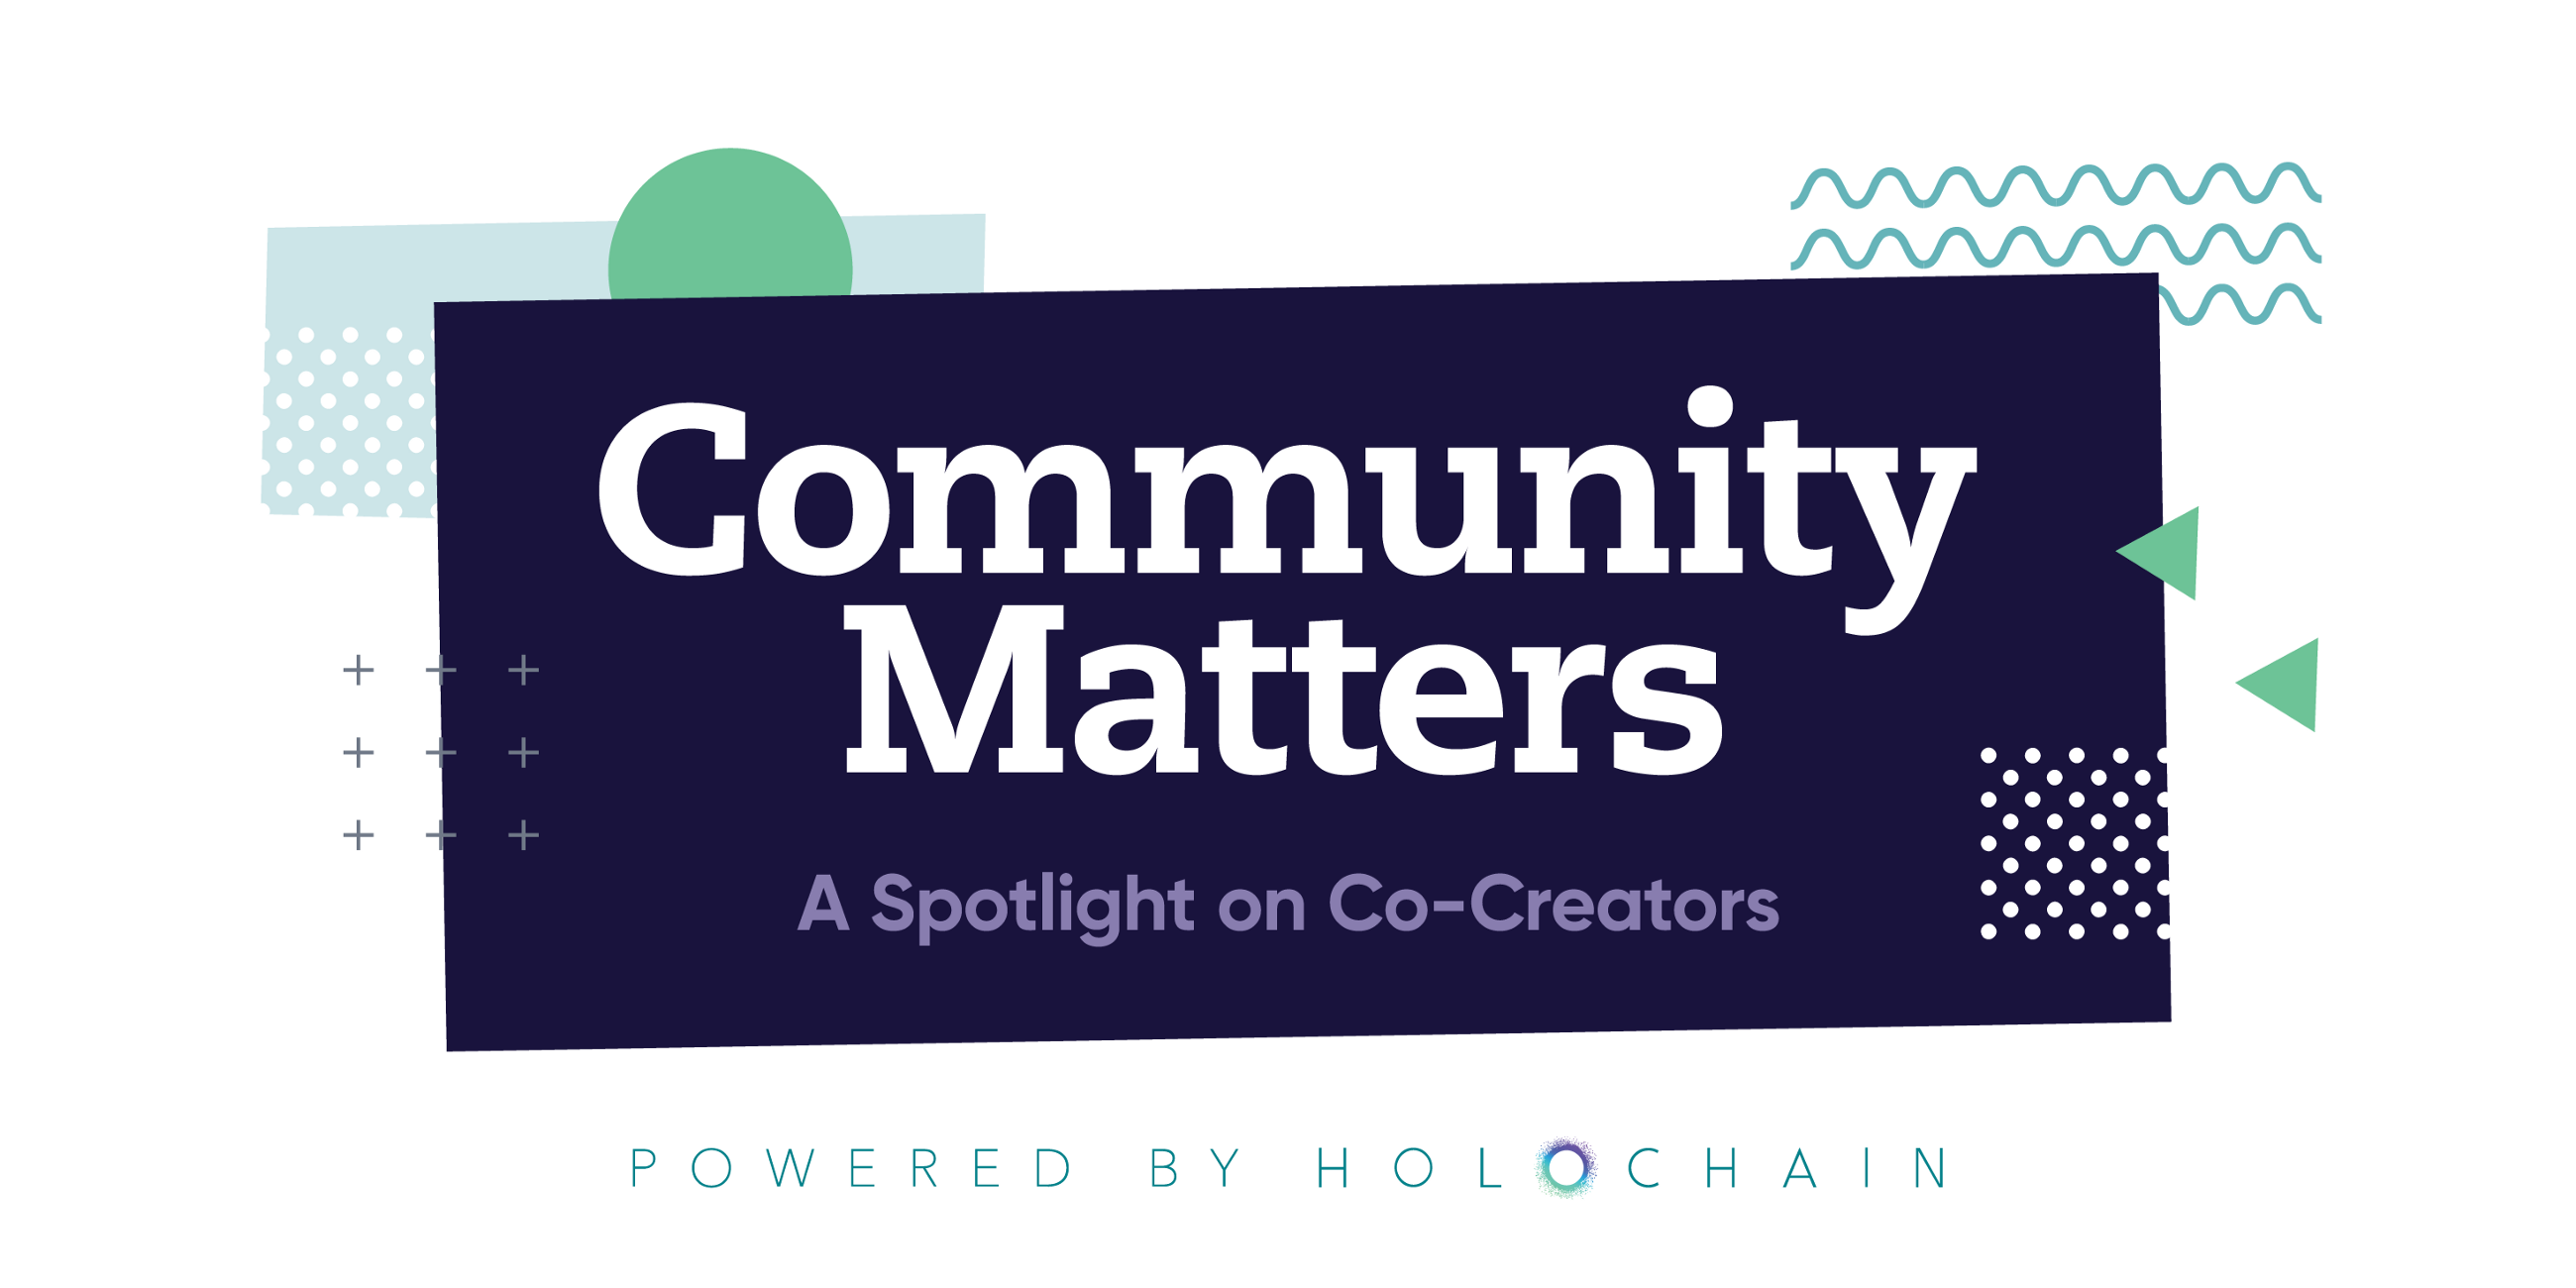 Thomas Miller: Passionate Holo Community Builder from Down Under